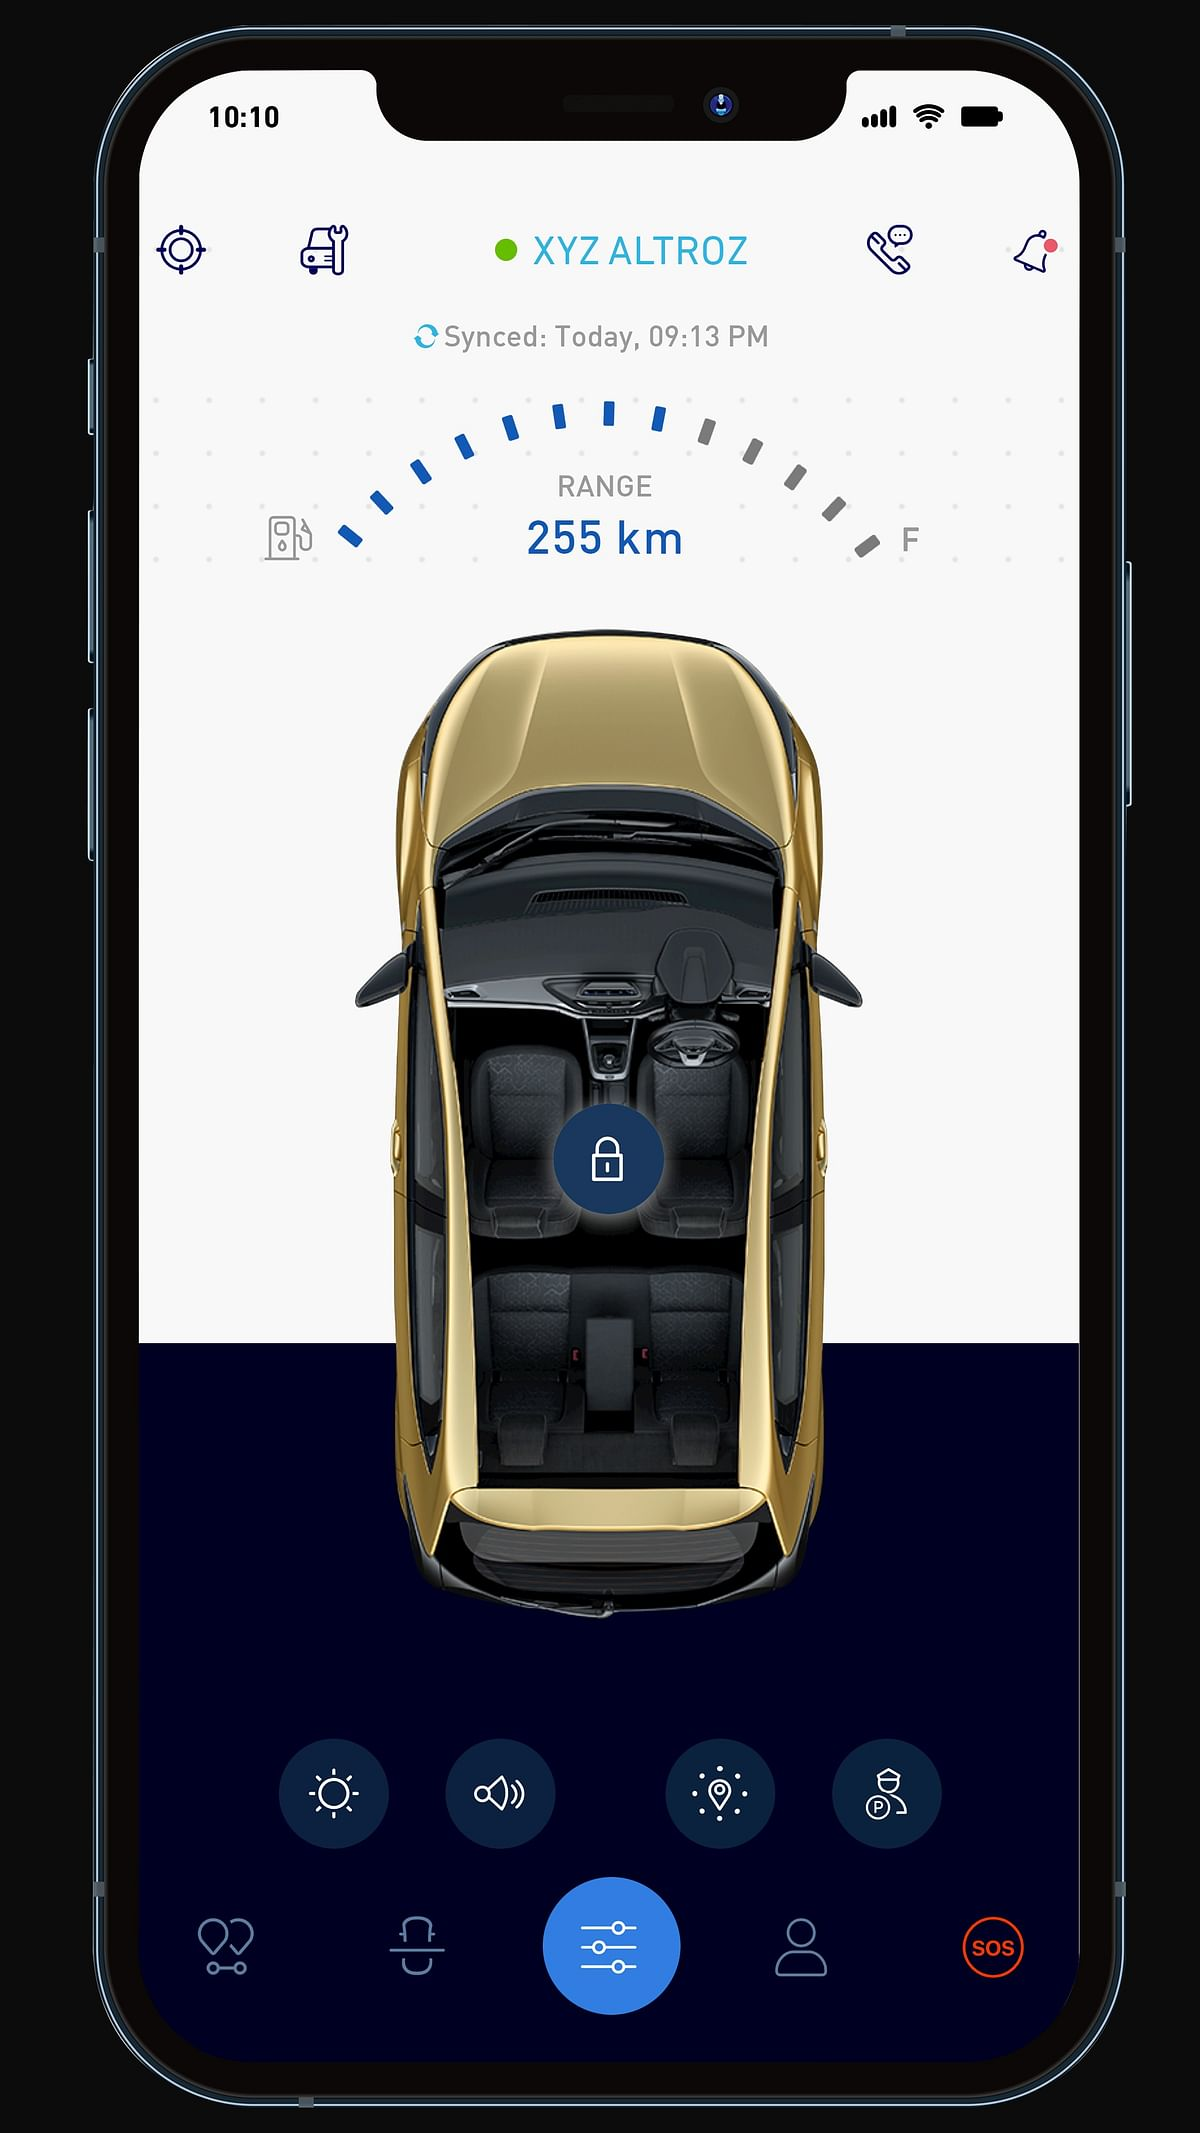 The iTurbo also gets the iRA connected car features